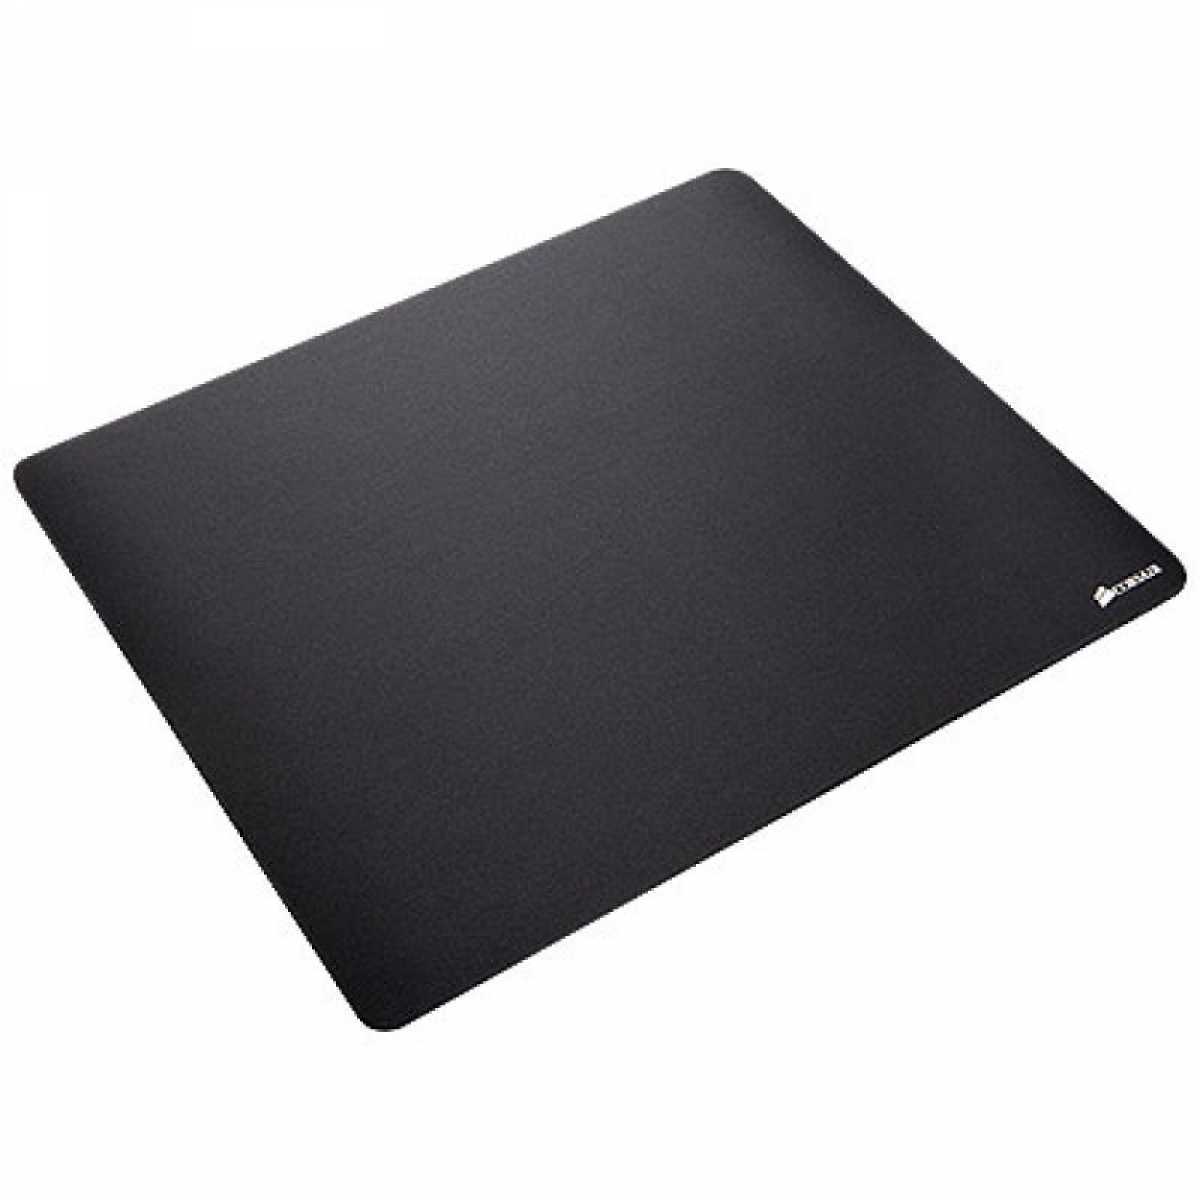 Mouse pad Corsair Vengeance MM400 Gaming Mouse Mat Wide Edition - CH-9000016-WW